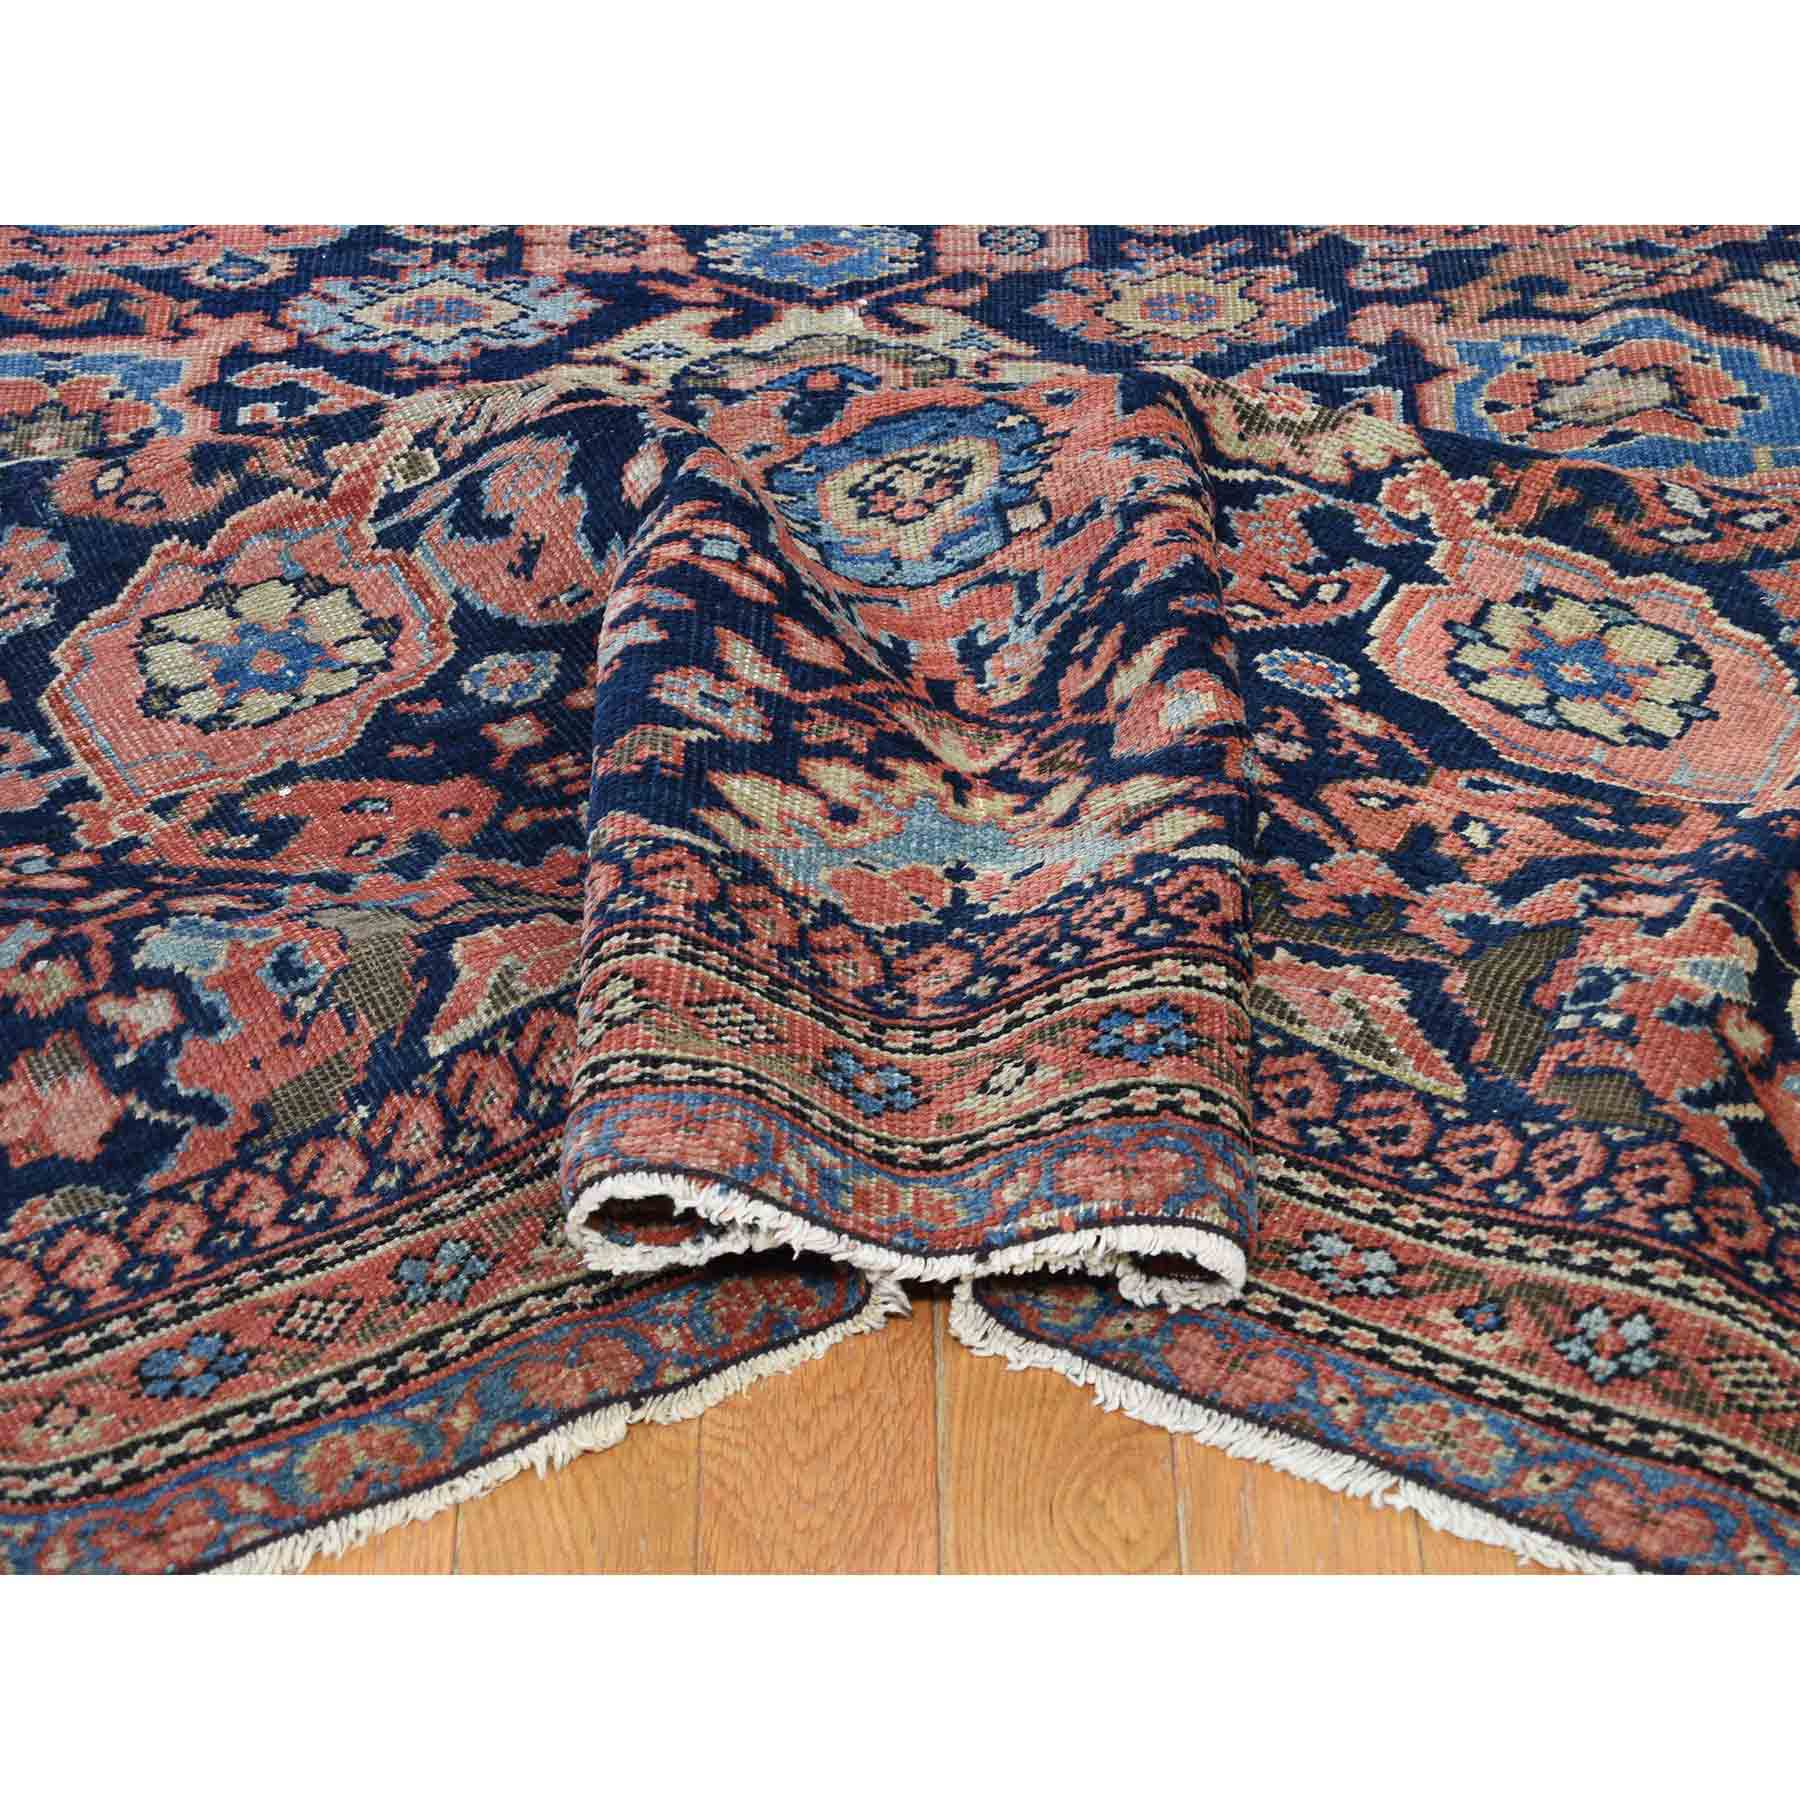 Antique-Hand-Knotted-Rug-224345